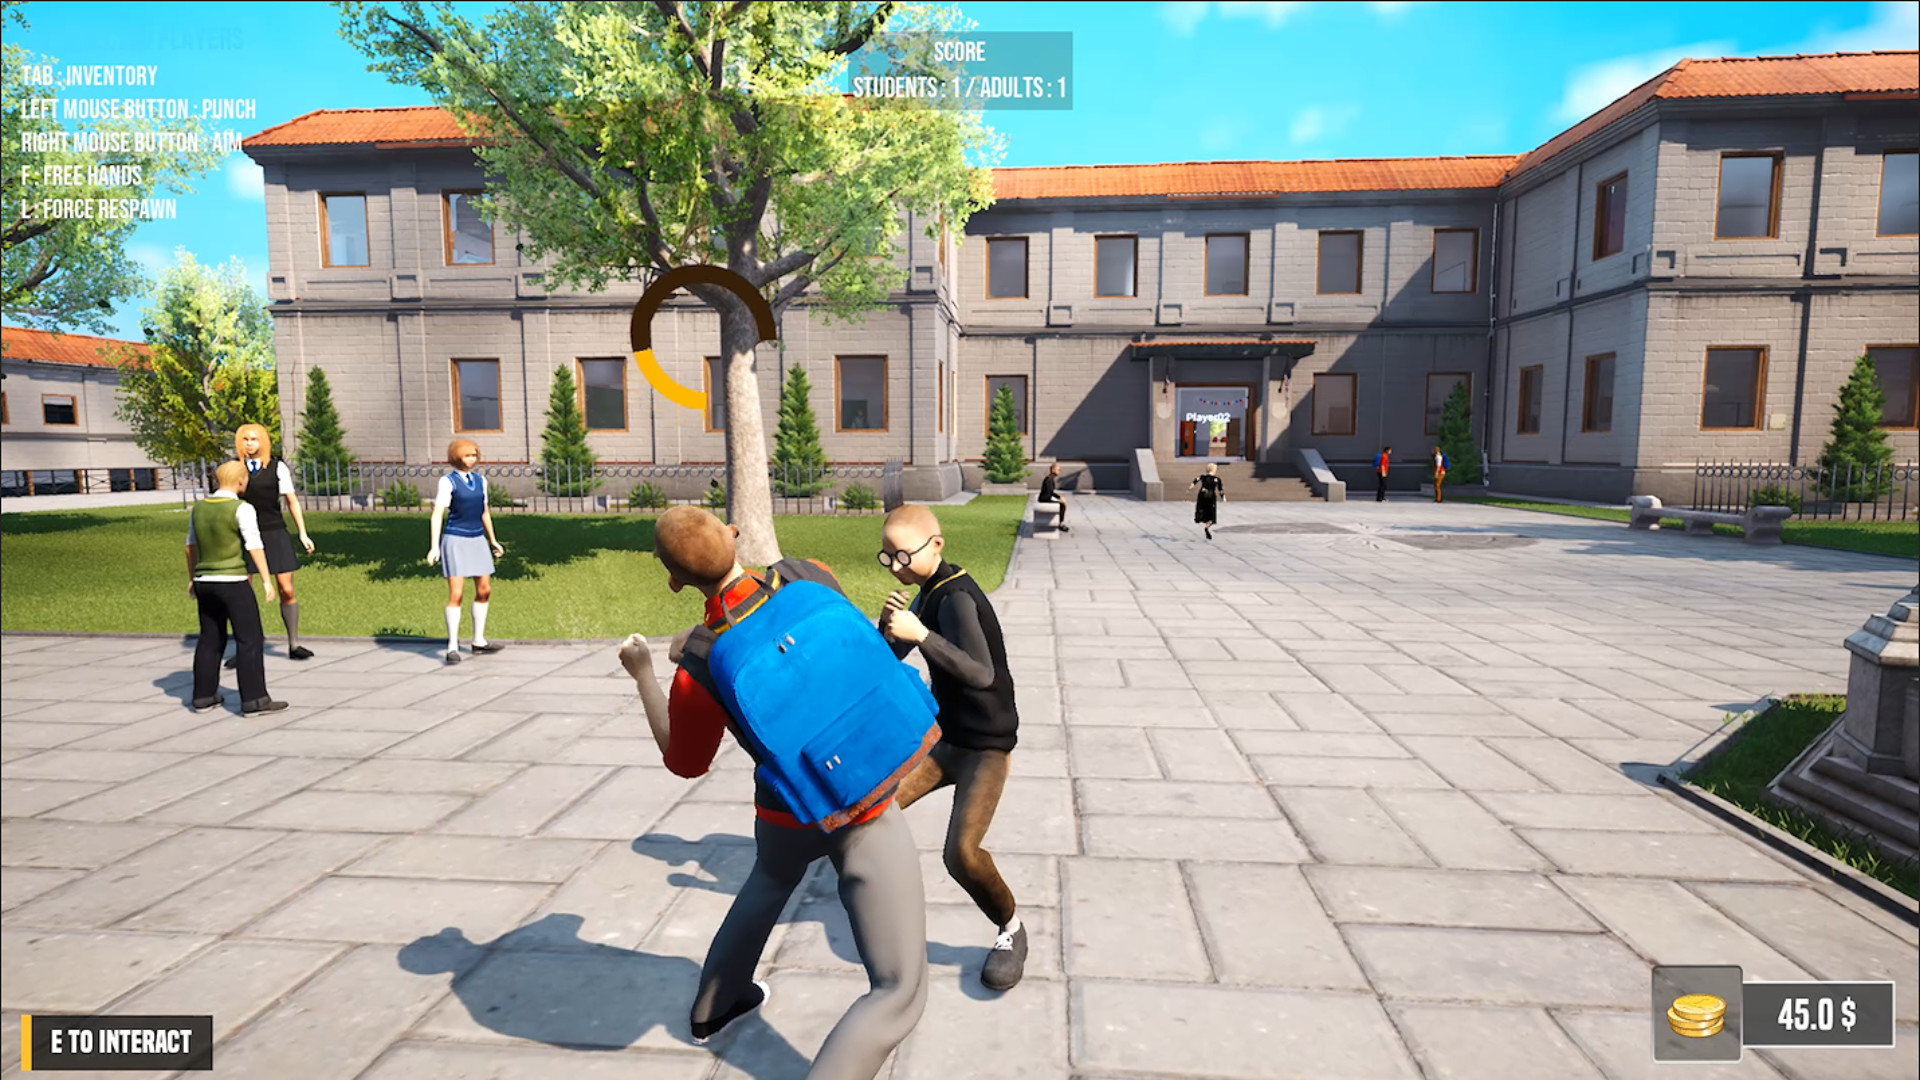 Bad Guys at School Screenshot 3